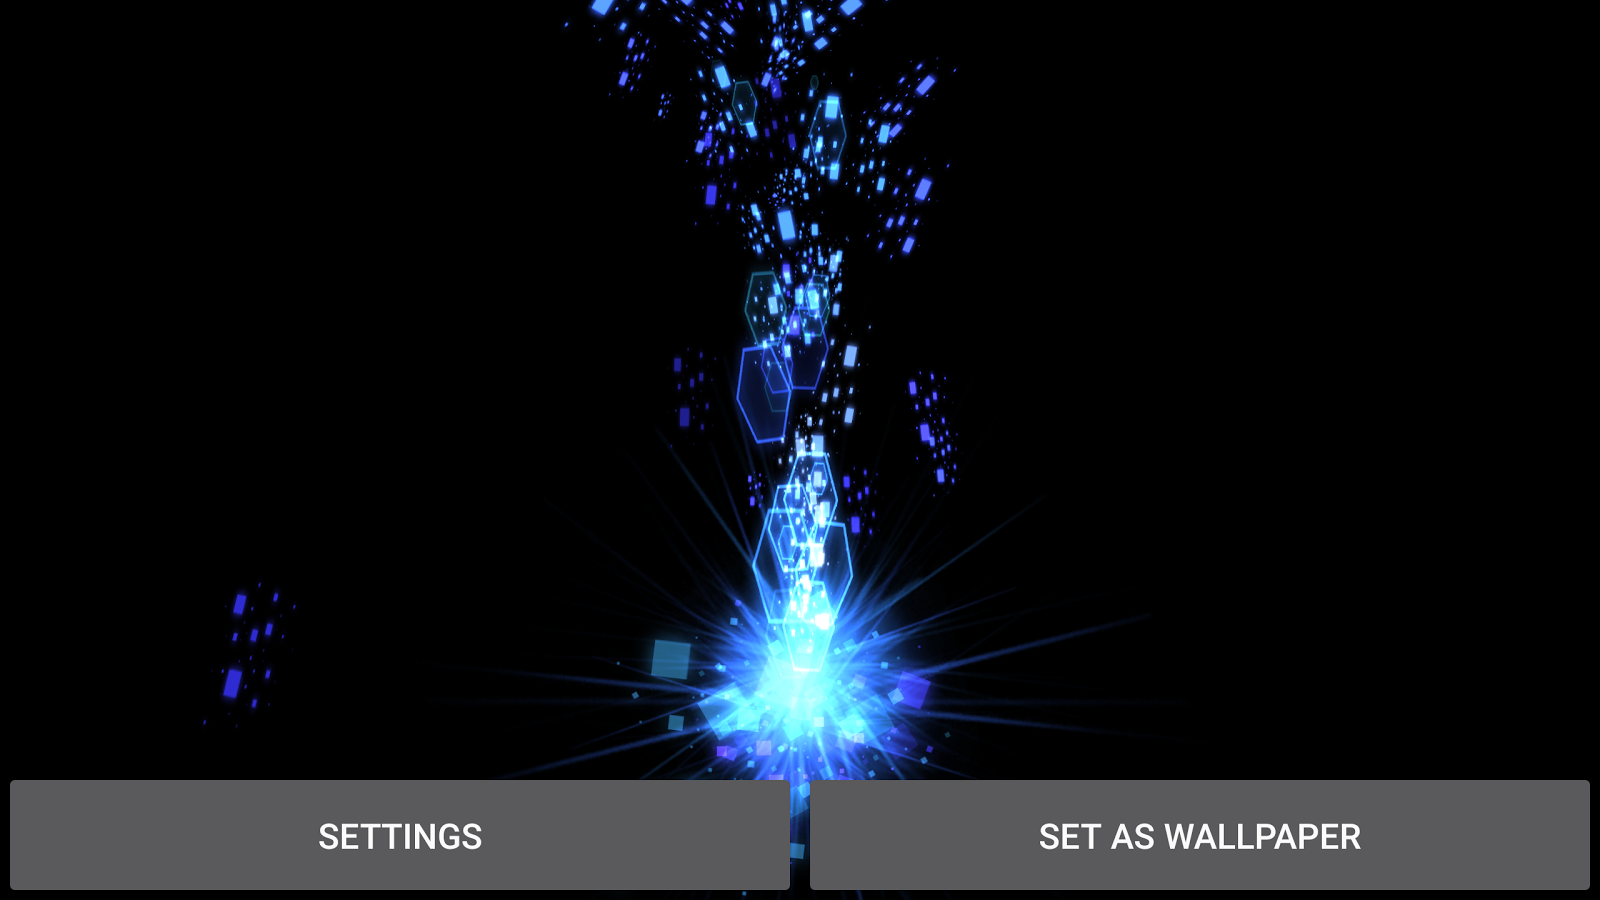 Retro Particles Live Wallpaper Apk Cracked Free Download